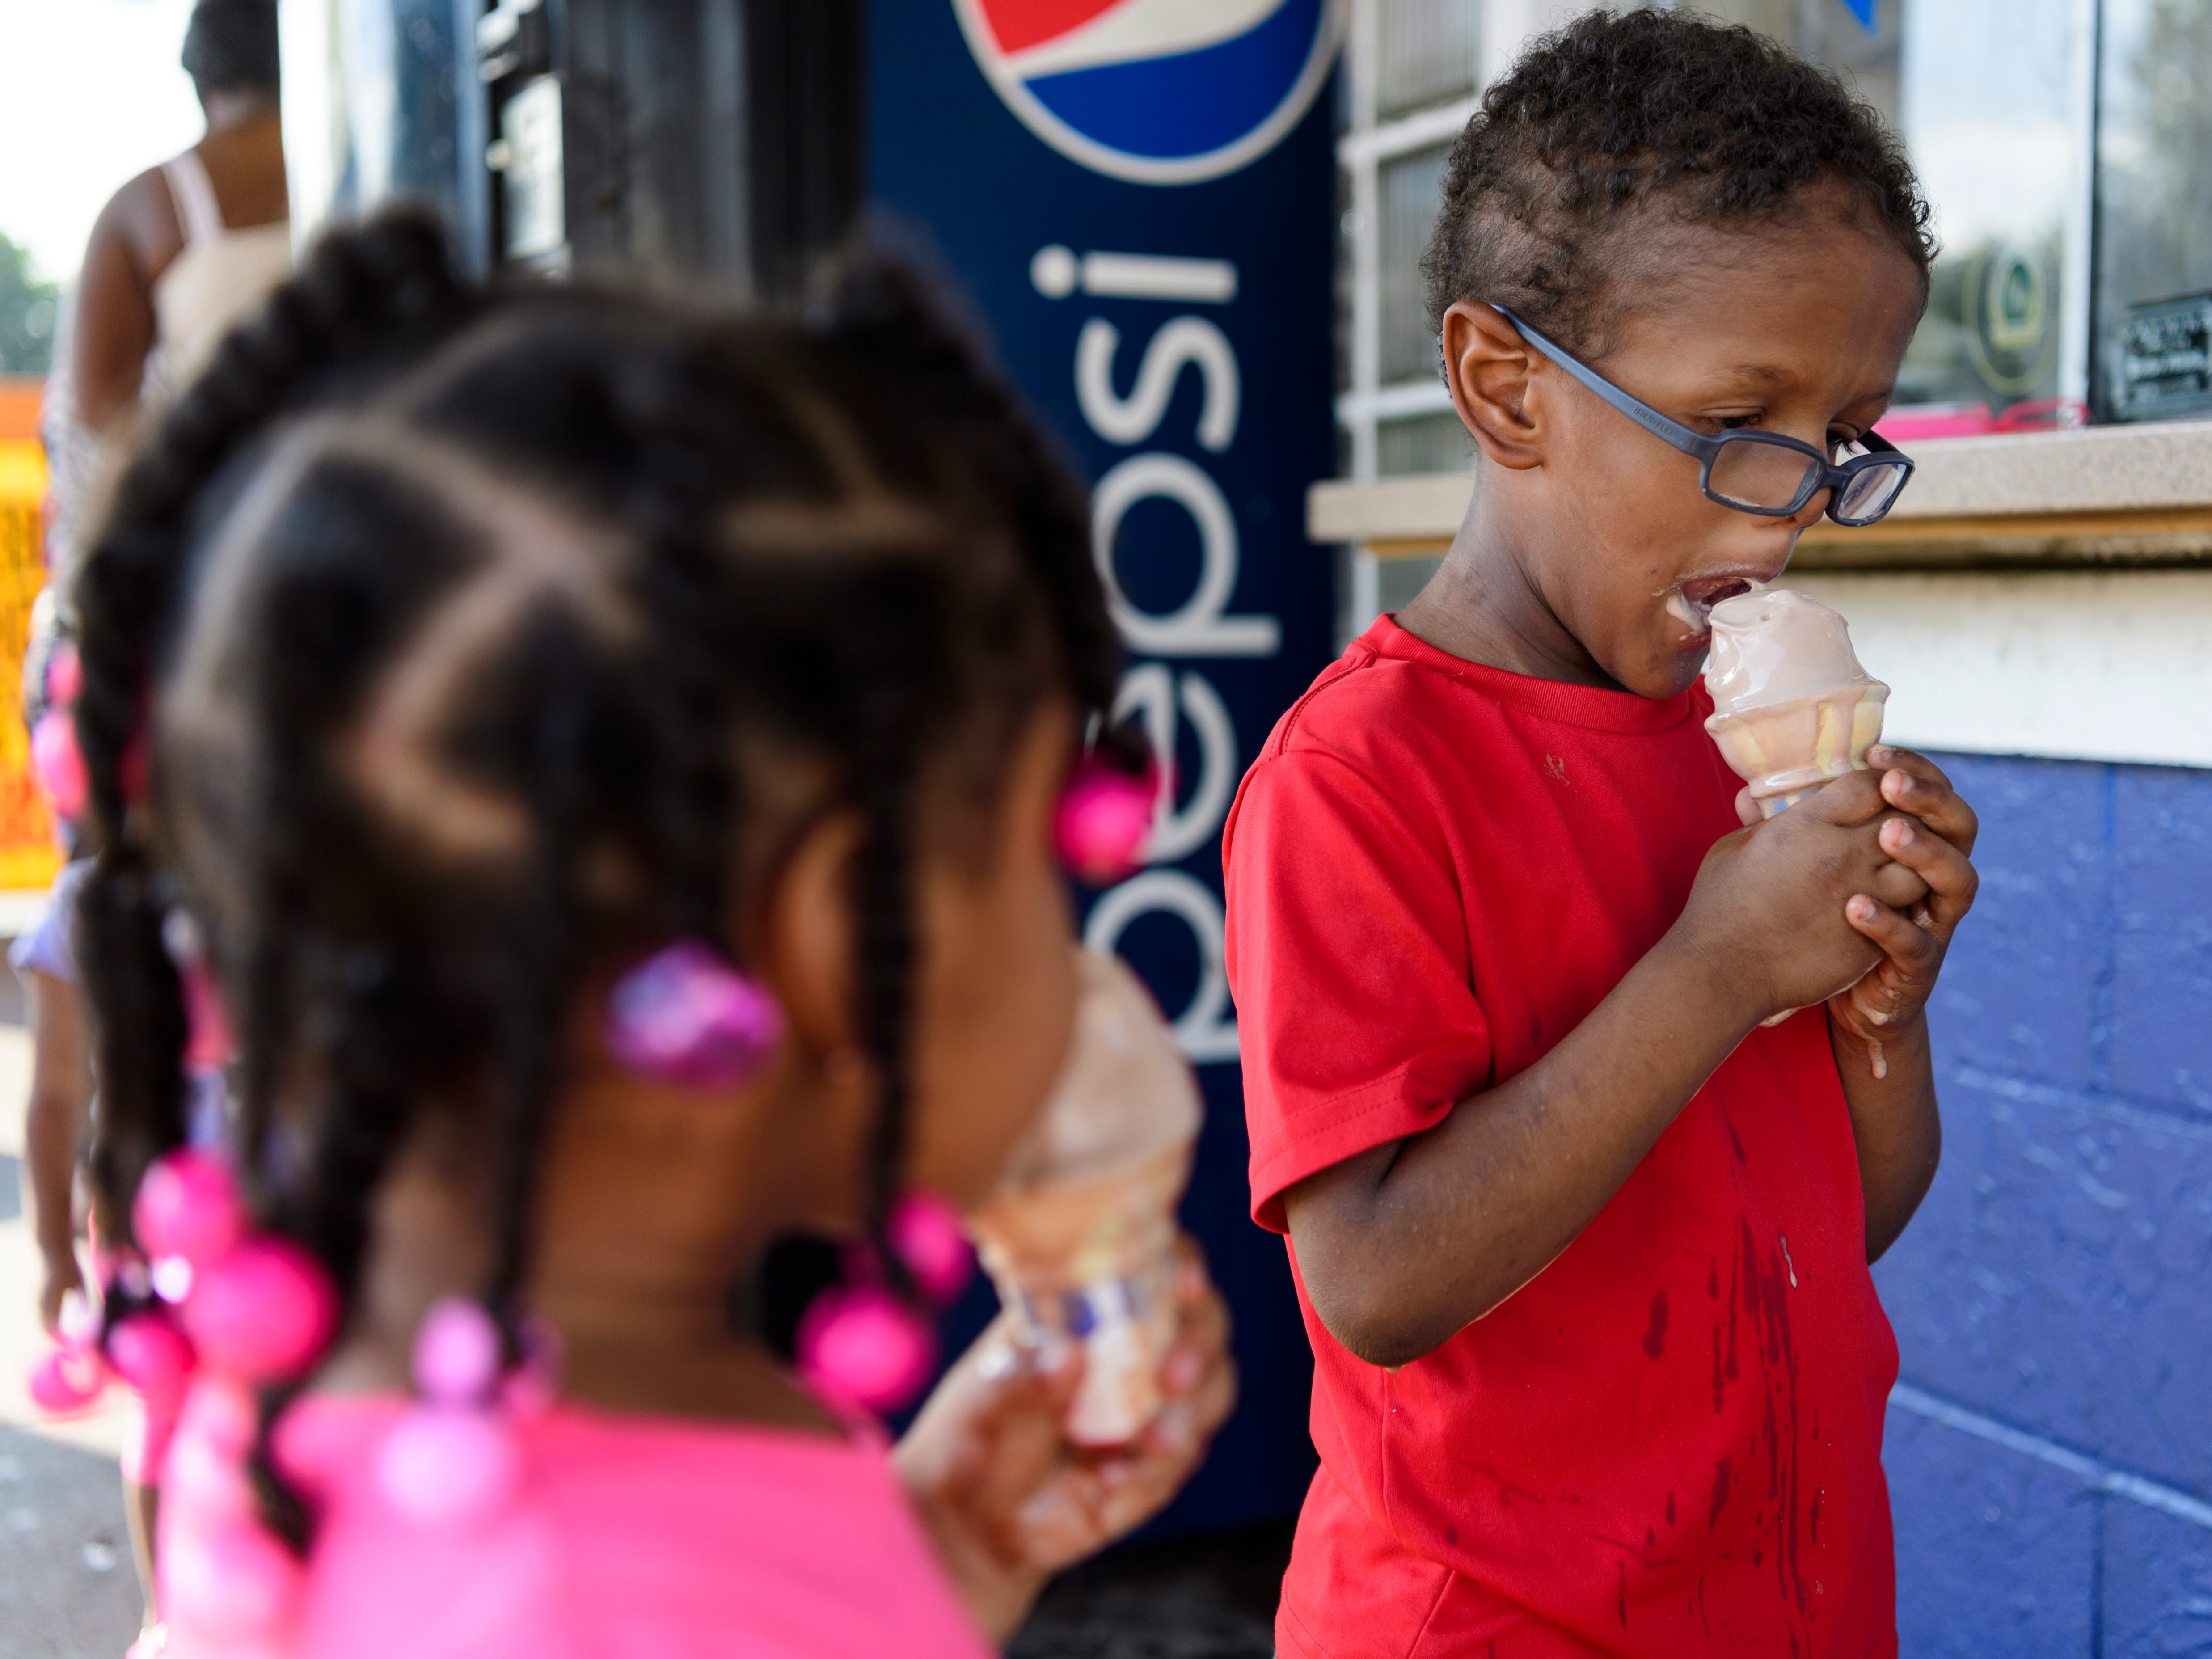 The ice cream is melting faster than Zarielle King, 3, left, and her brother Quay King, 5, can eat it at Zesto's Drive-In on Riverside Drive in Evansville, Ind., Thursday, Sept. 20, 2018. By Thursday afternoon, the temperature in the Tri-State area hit 98 degrees with a heat index of 104.